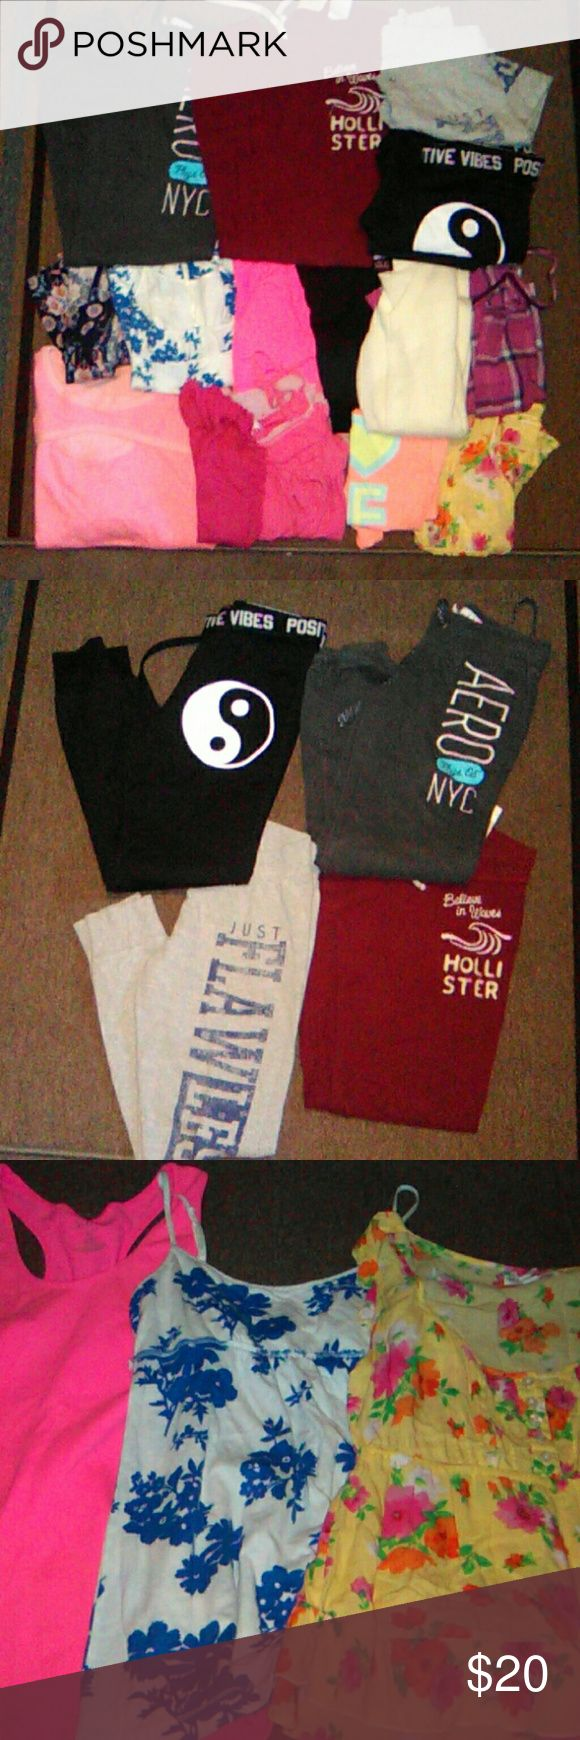 ❤ Bundle PINK Hollister Sweatpant Tops Shirt You get it all Big mixed xs-s bundle of clothing PINK by VS tank  Hollister Aero Gap mudd 2 or 3 items show use and orange tank has a spot  some new all good shape Ships quick Smoke free home PINK Victoria's Secret Tops